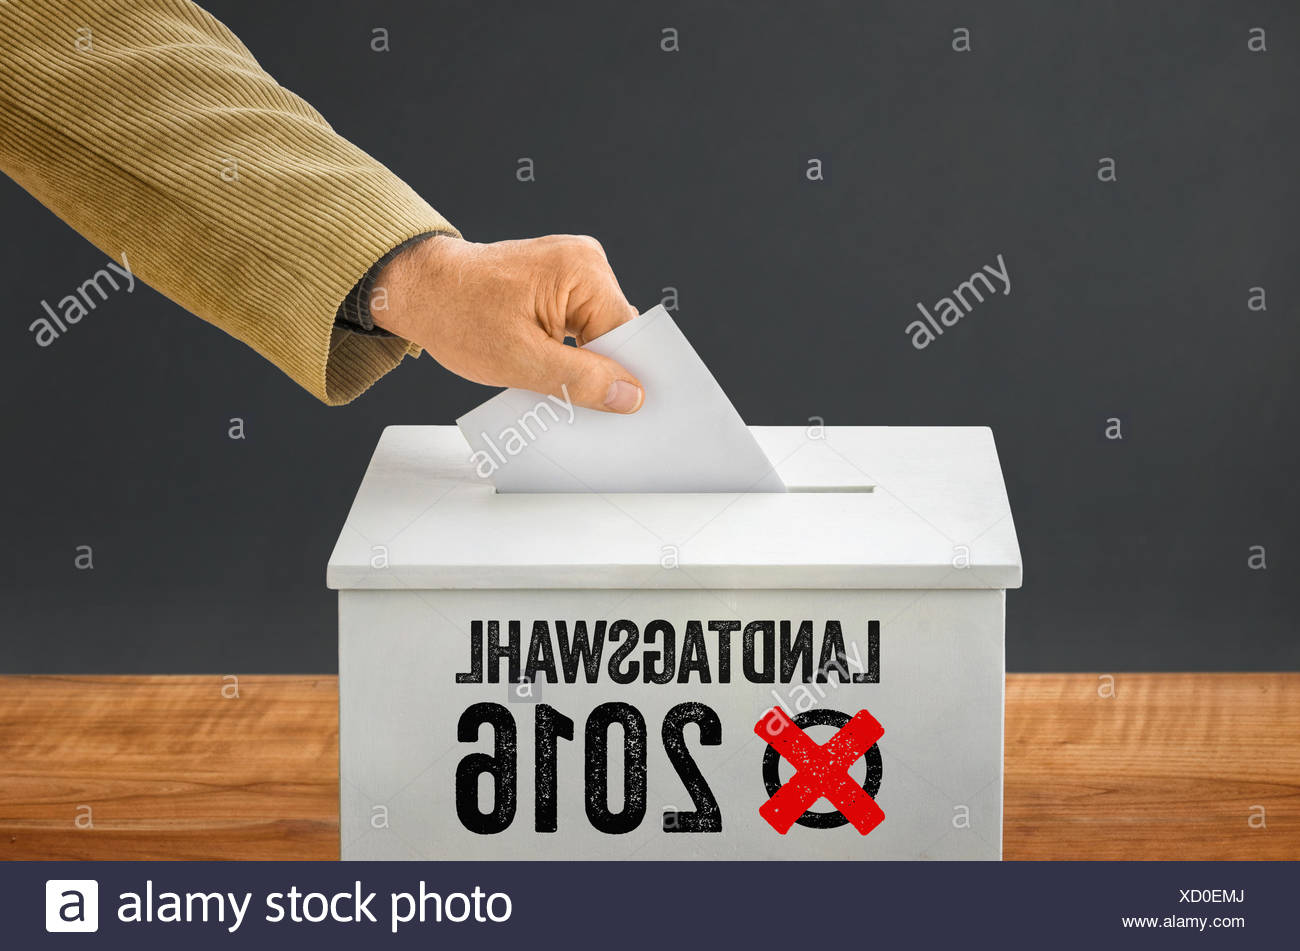 state election in 2016 - Stock Image